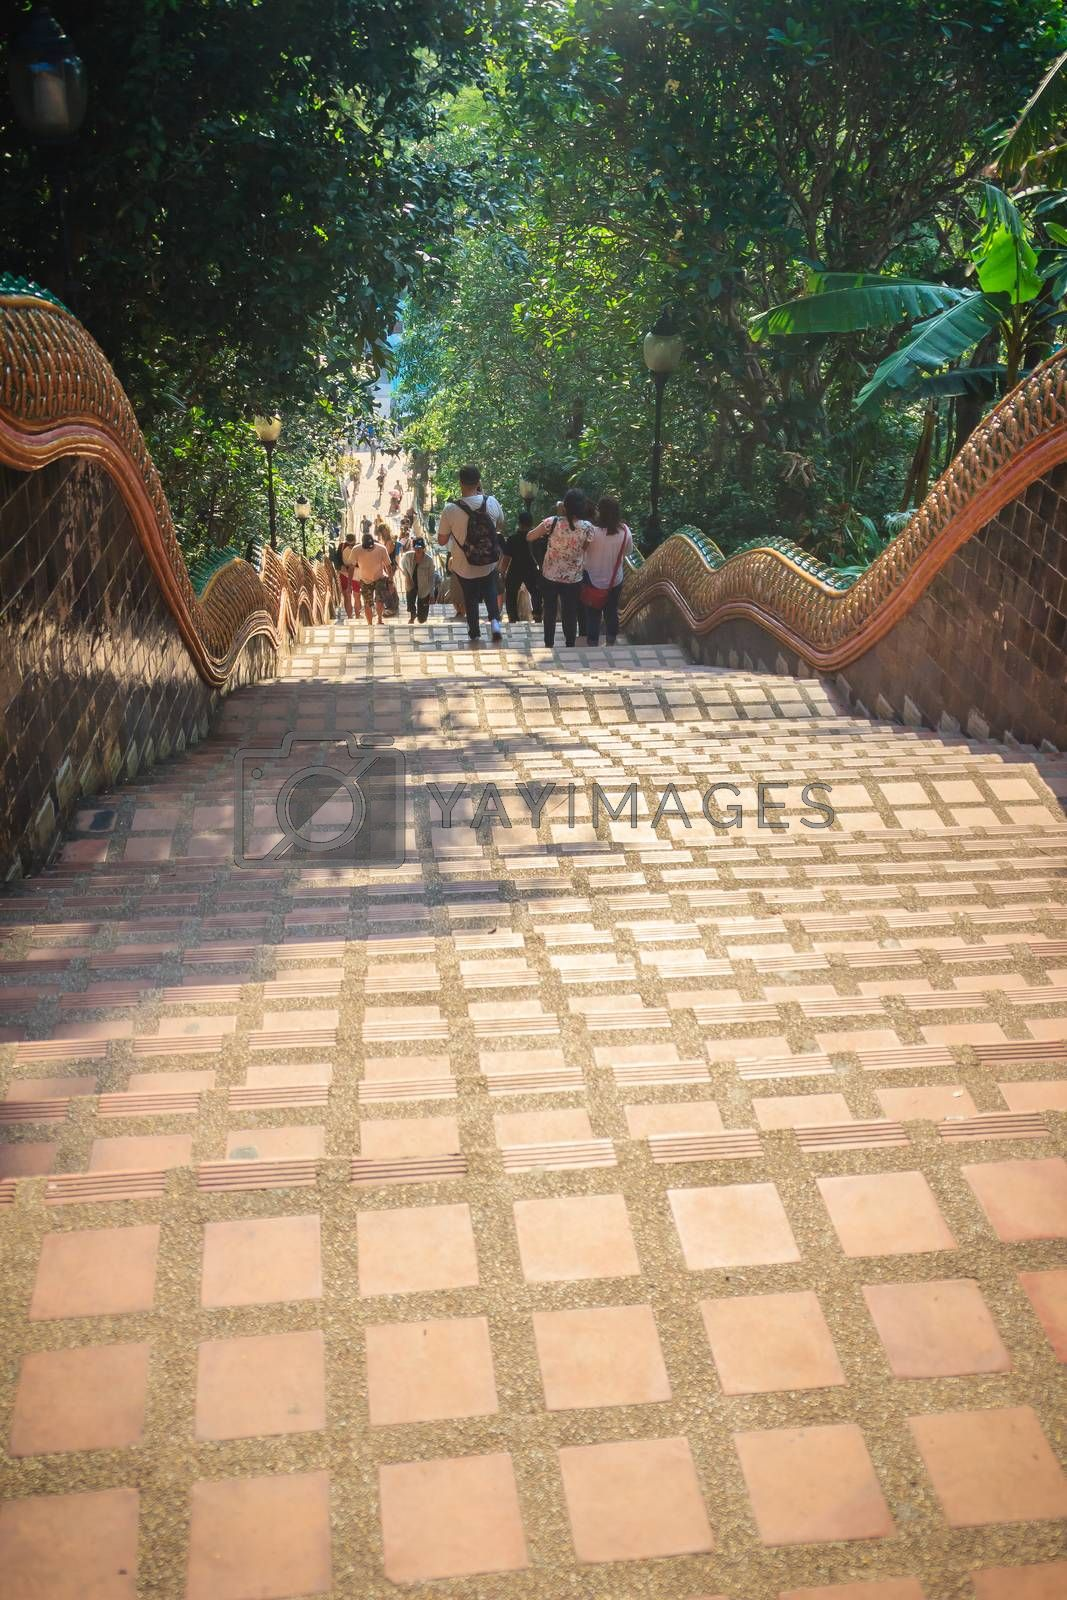 Chiang Mai, Thailand - May 3, 2017: Tourist are walking down the naga stairs after worship to the golden chedi at Wat Phra That Doi Suthep, the famous temple and became the landmark of Chiang Mai.